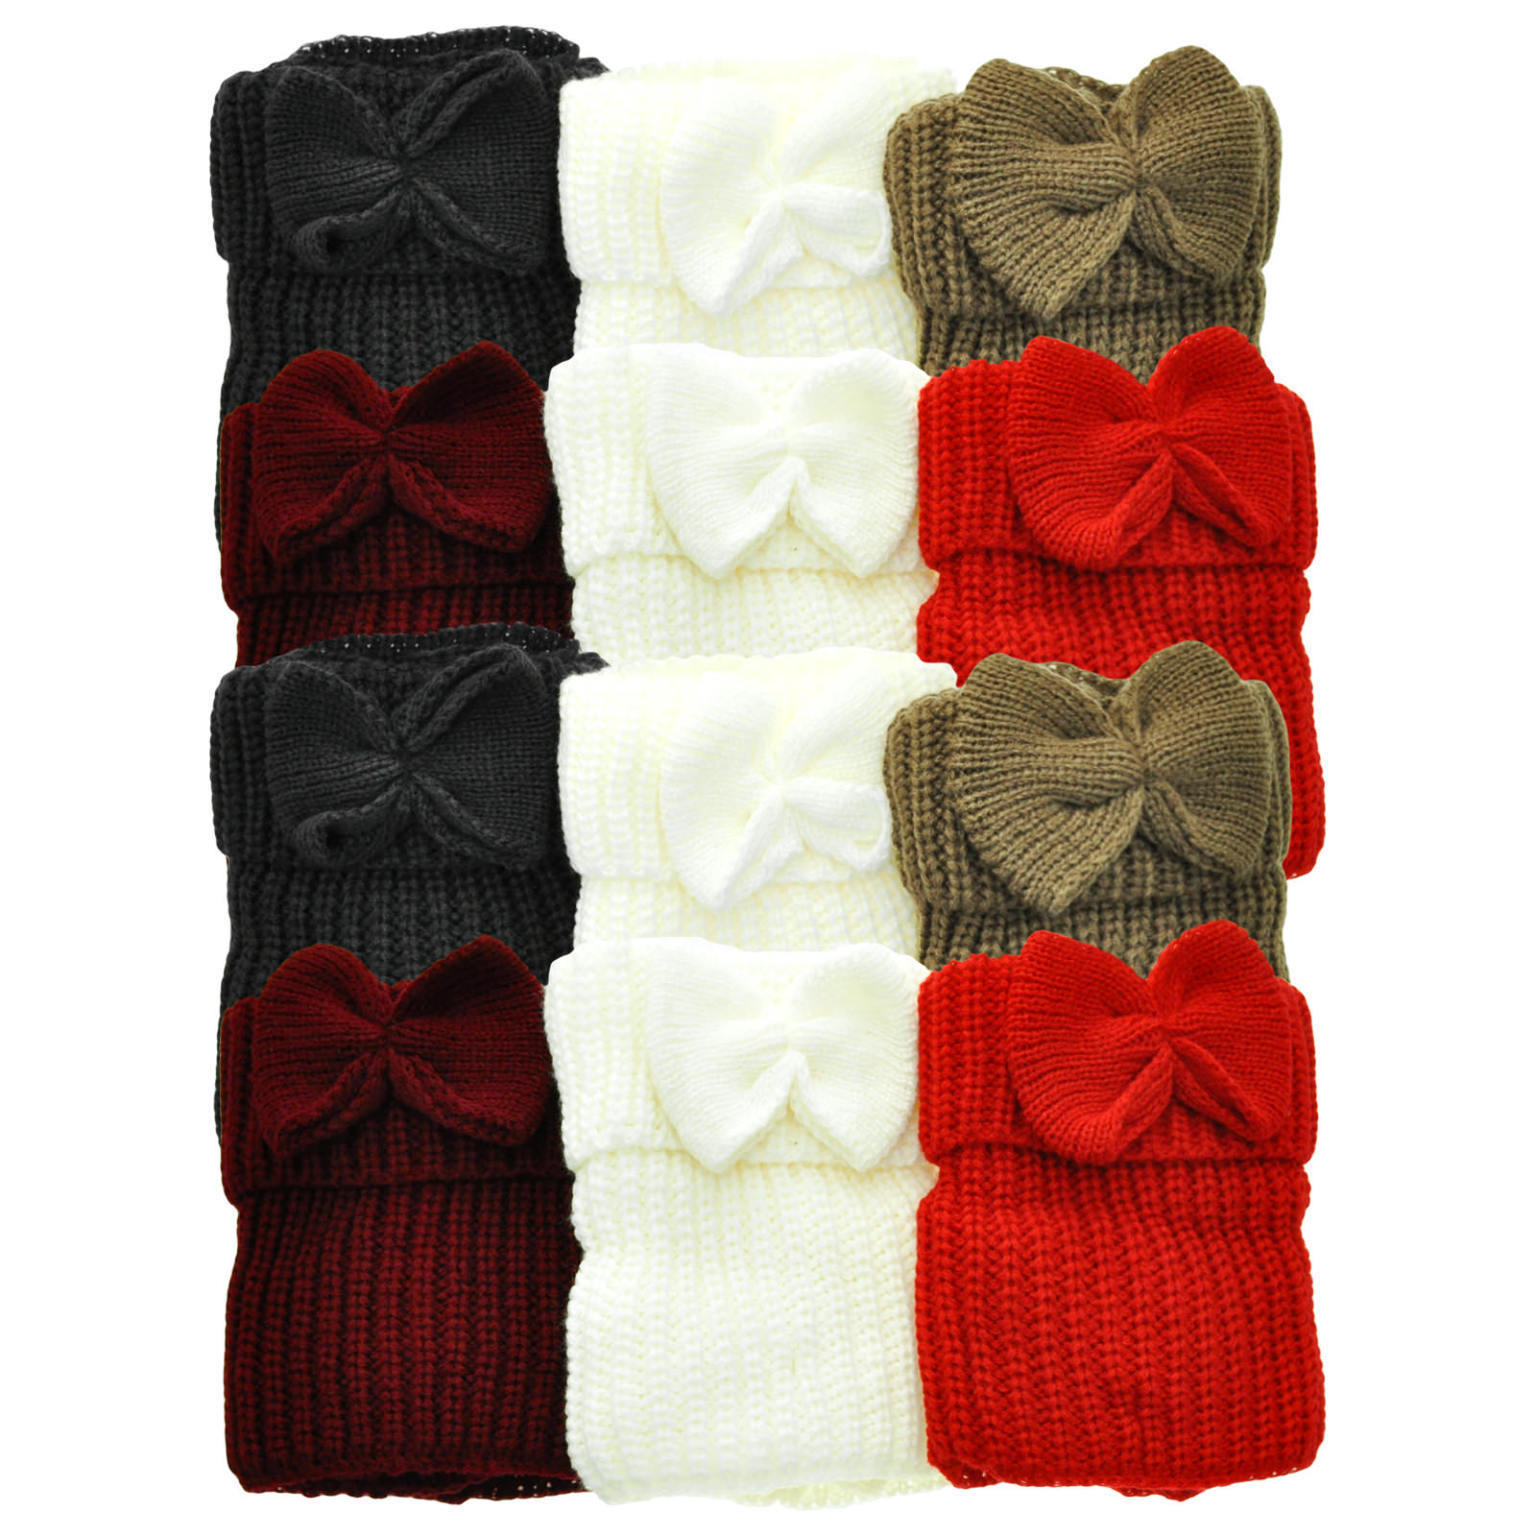 Case of [48] Angelina Knitted Boot Toppers - Bow Tie Accent